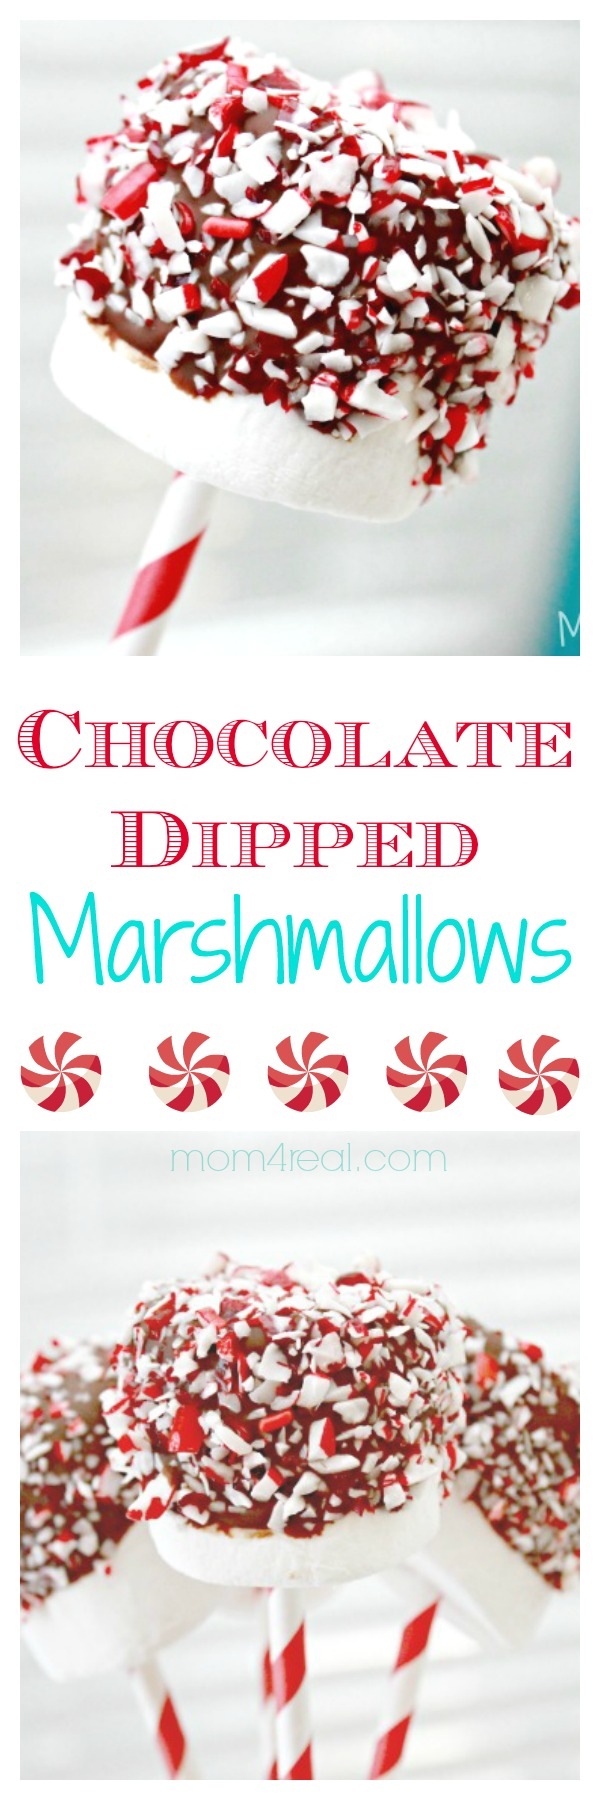 Chocolate Dipped Marshmallows Pops with Sprinkles